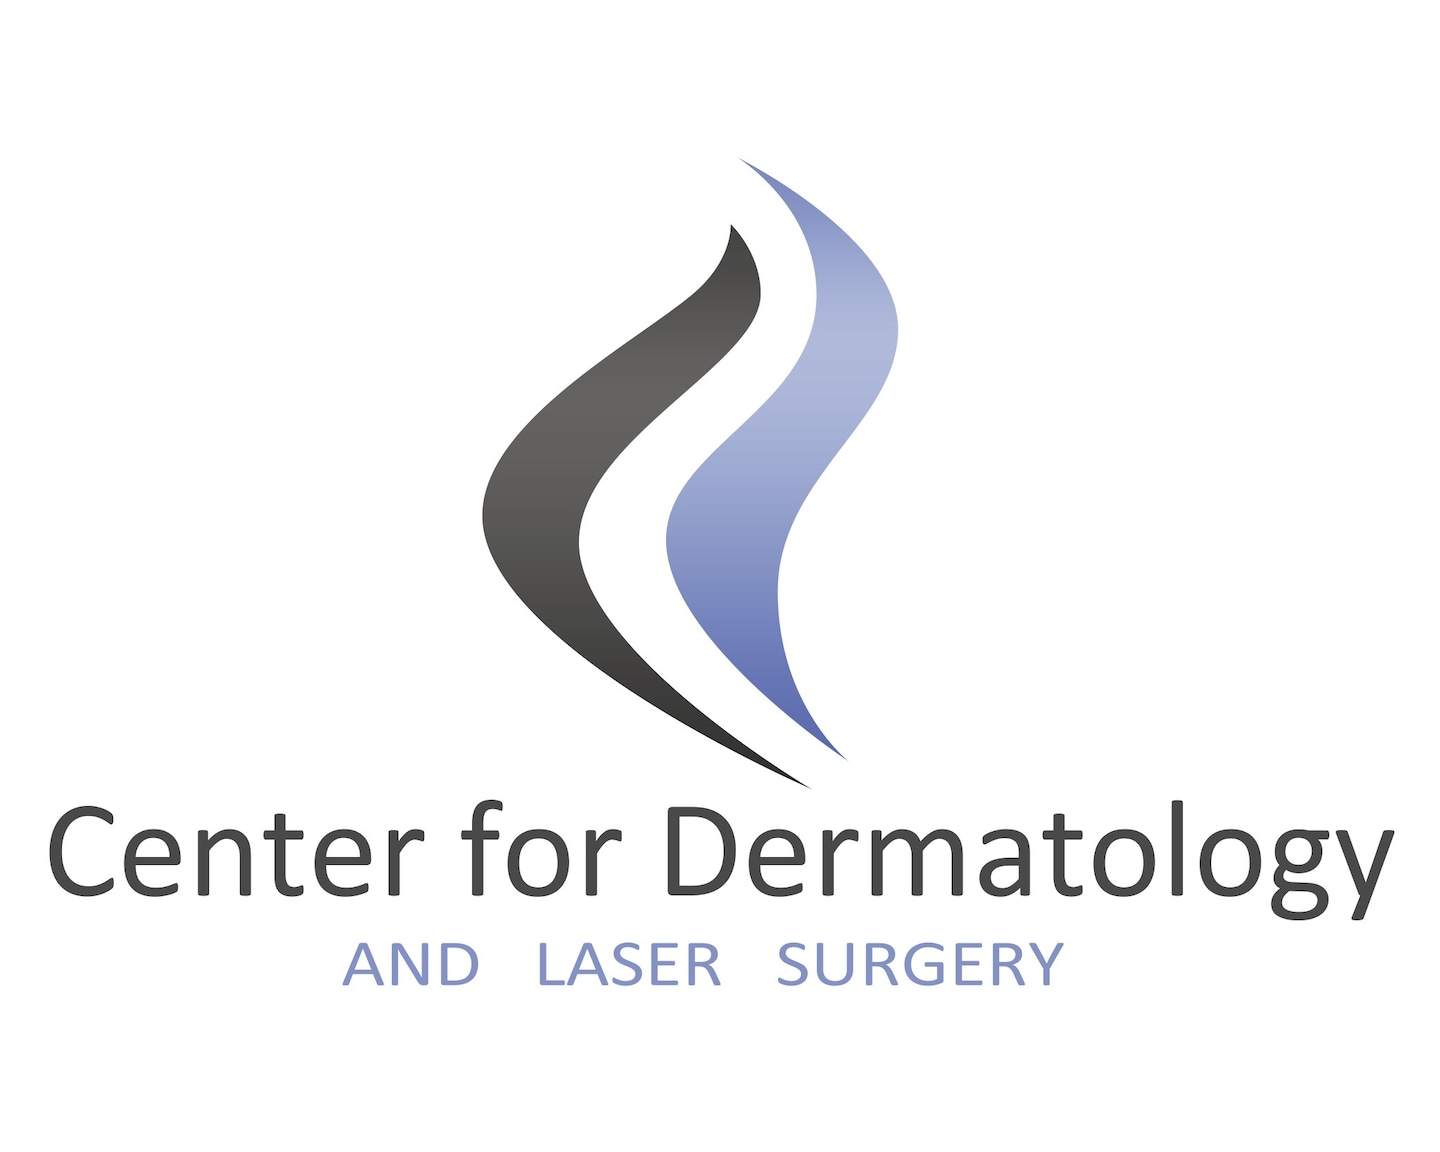 Center for Dermatology and Laser Surgery